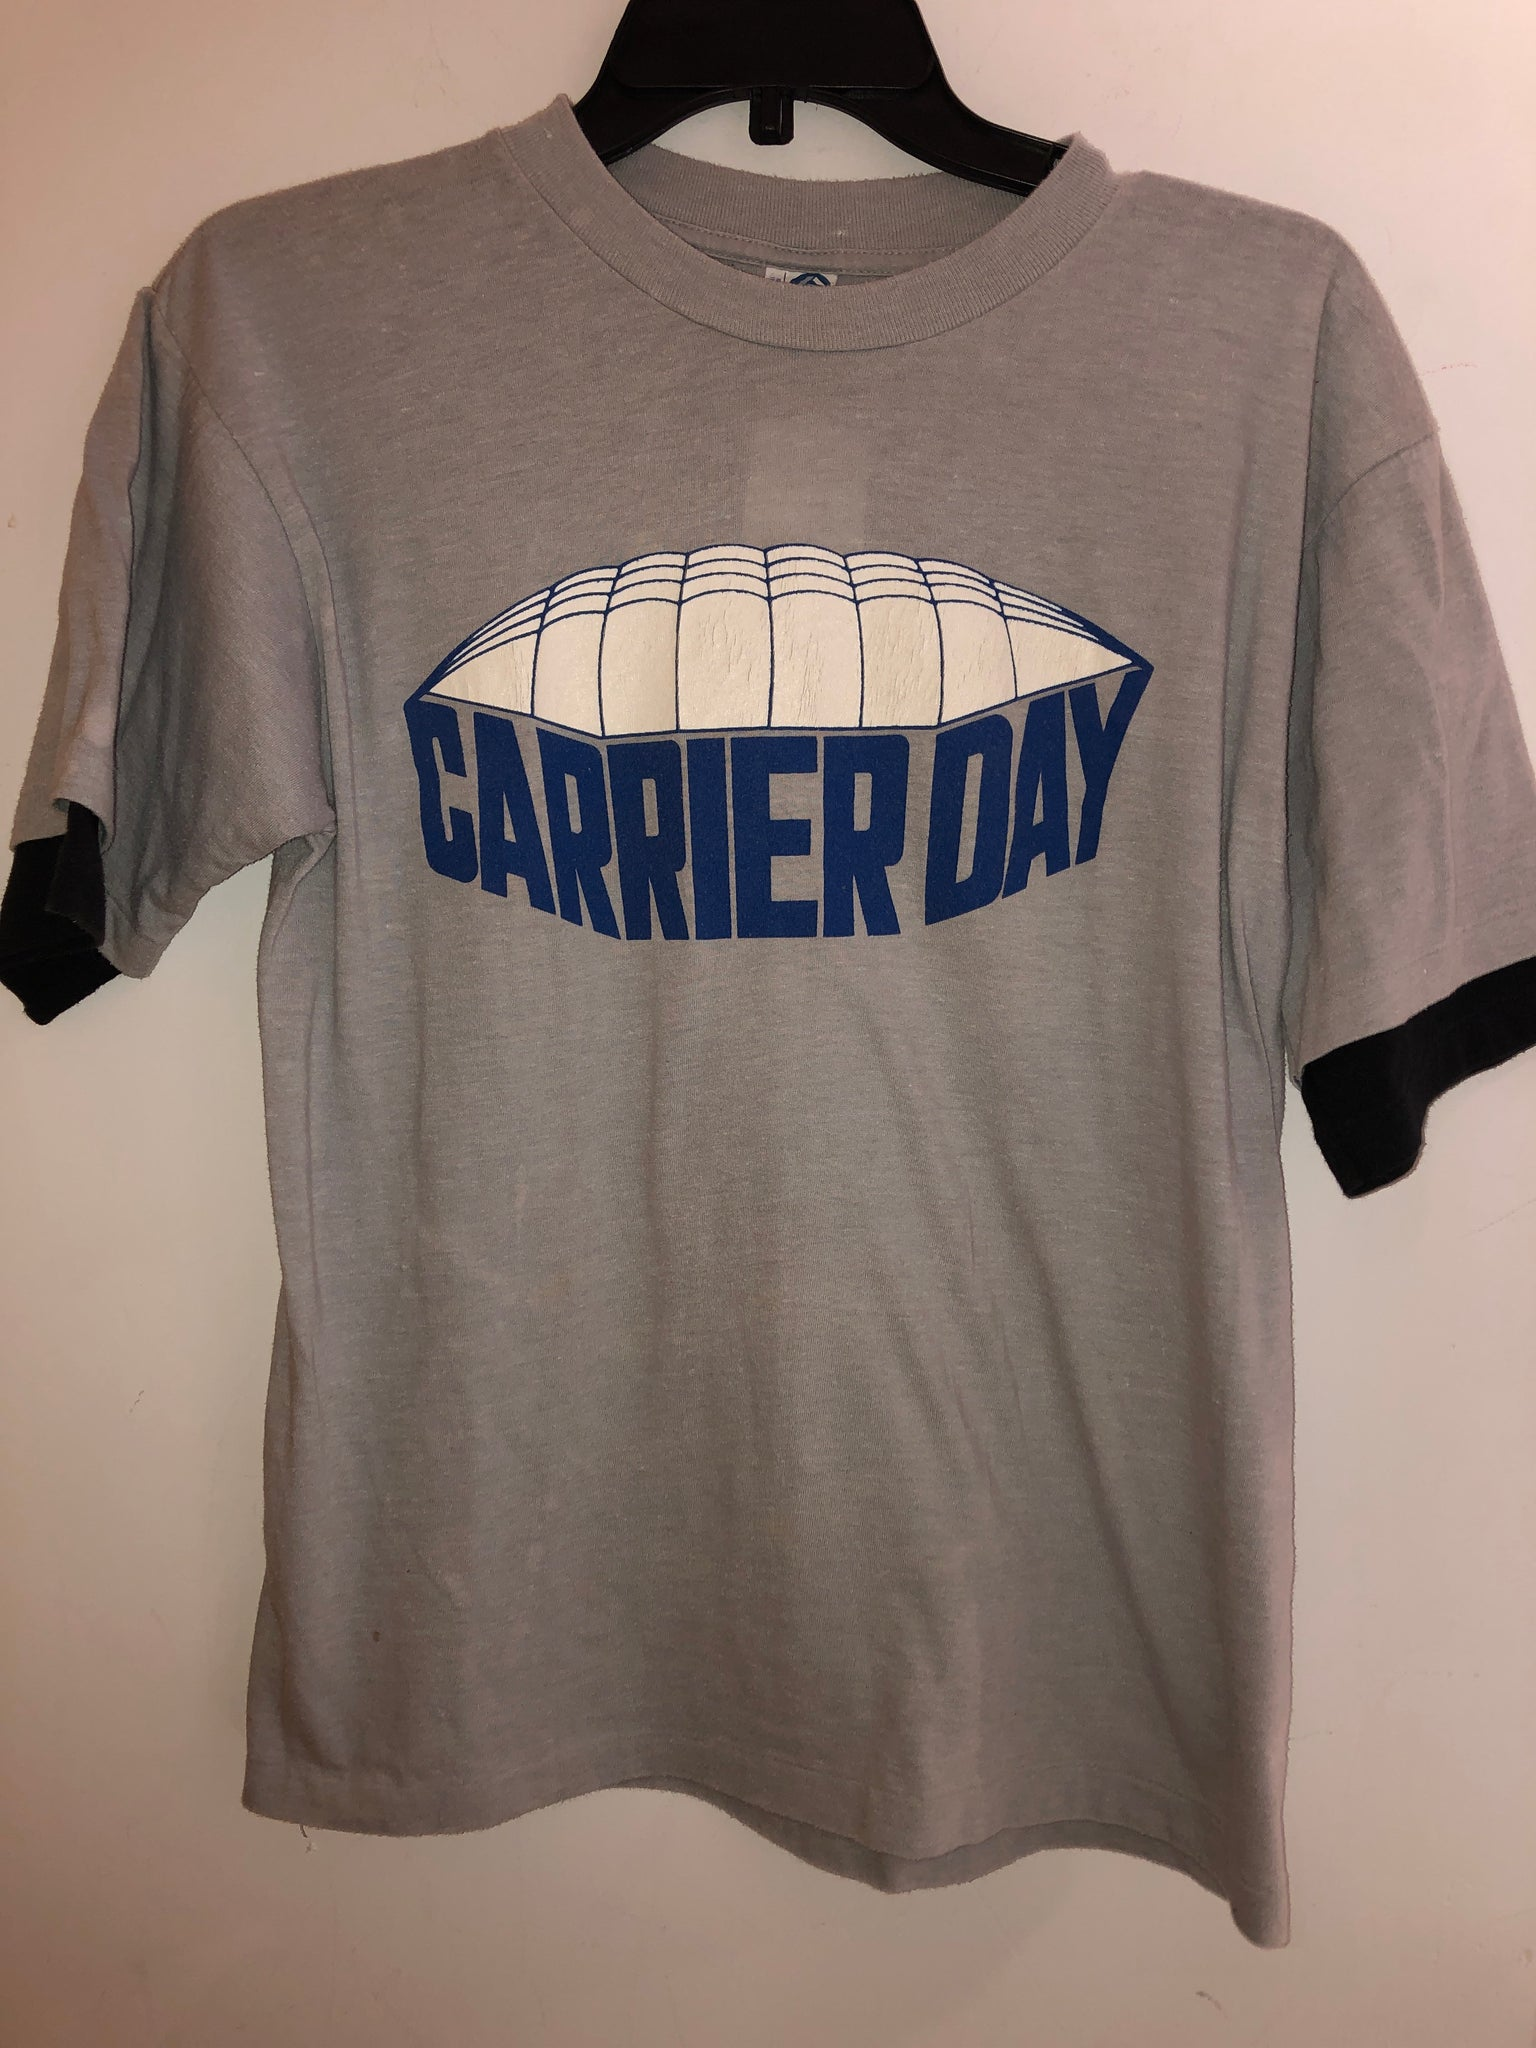 Vintage 80's Carrier Day Gray T Shirt Fits a Small/Medium. TS13